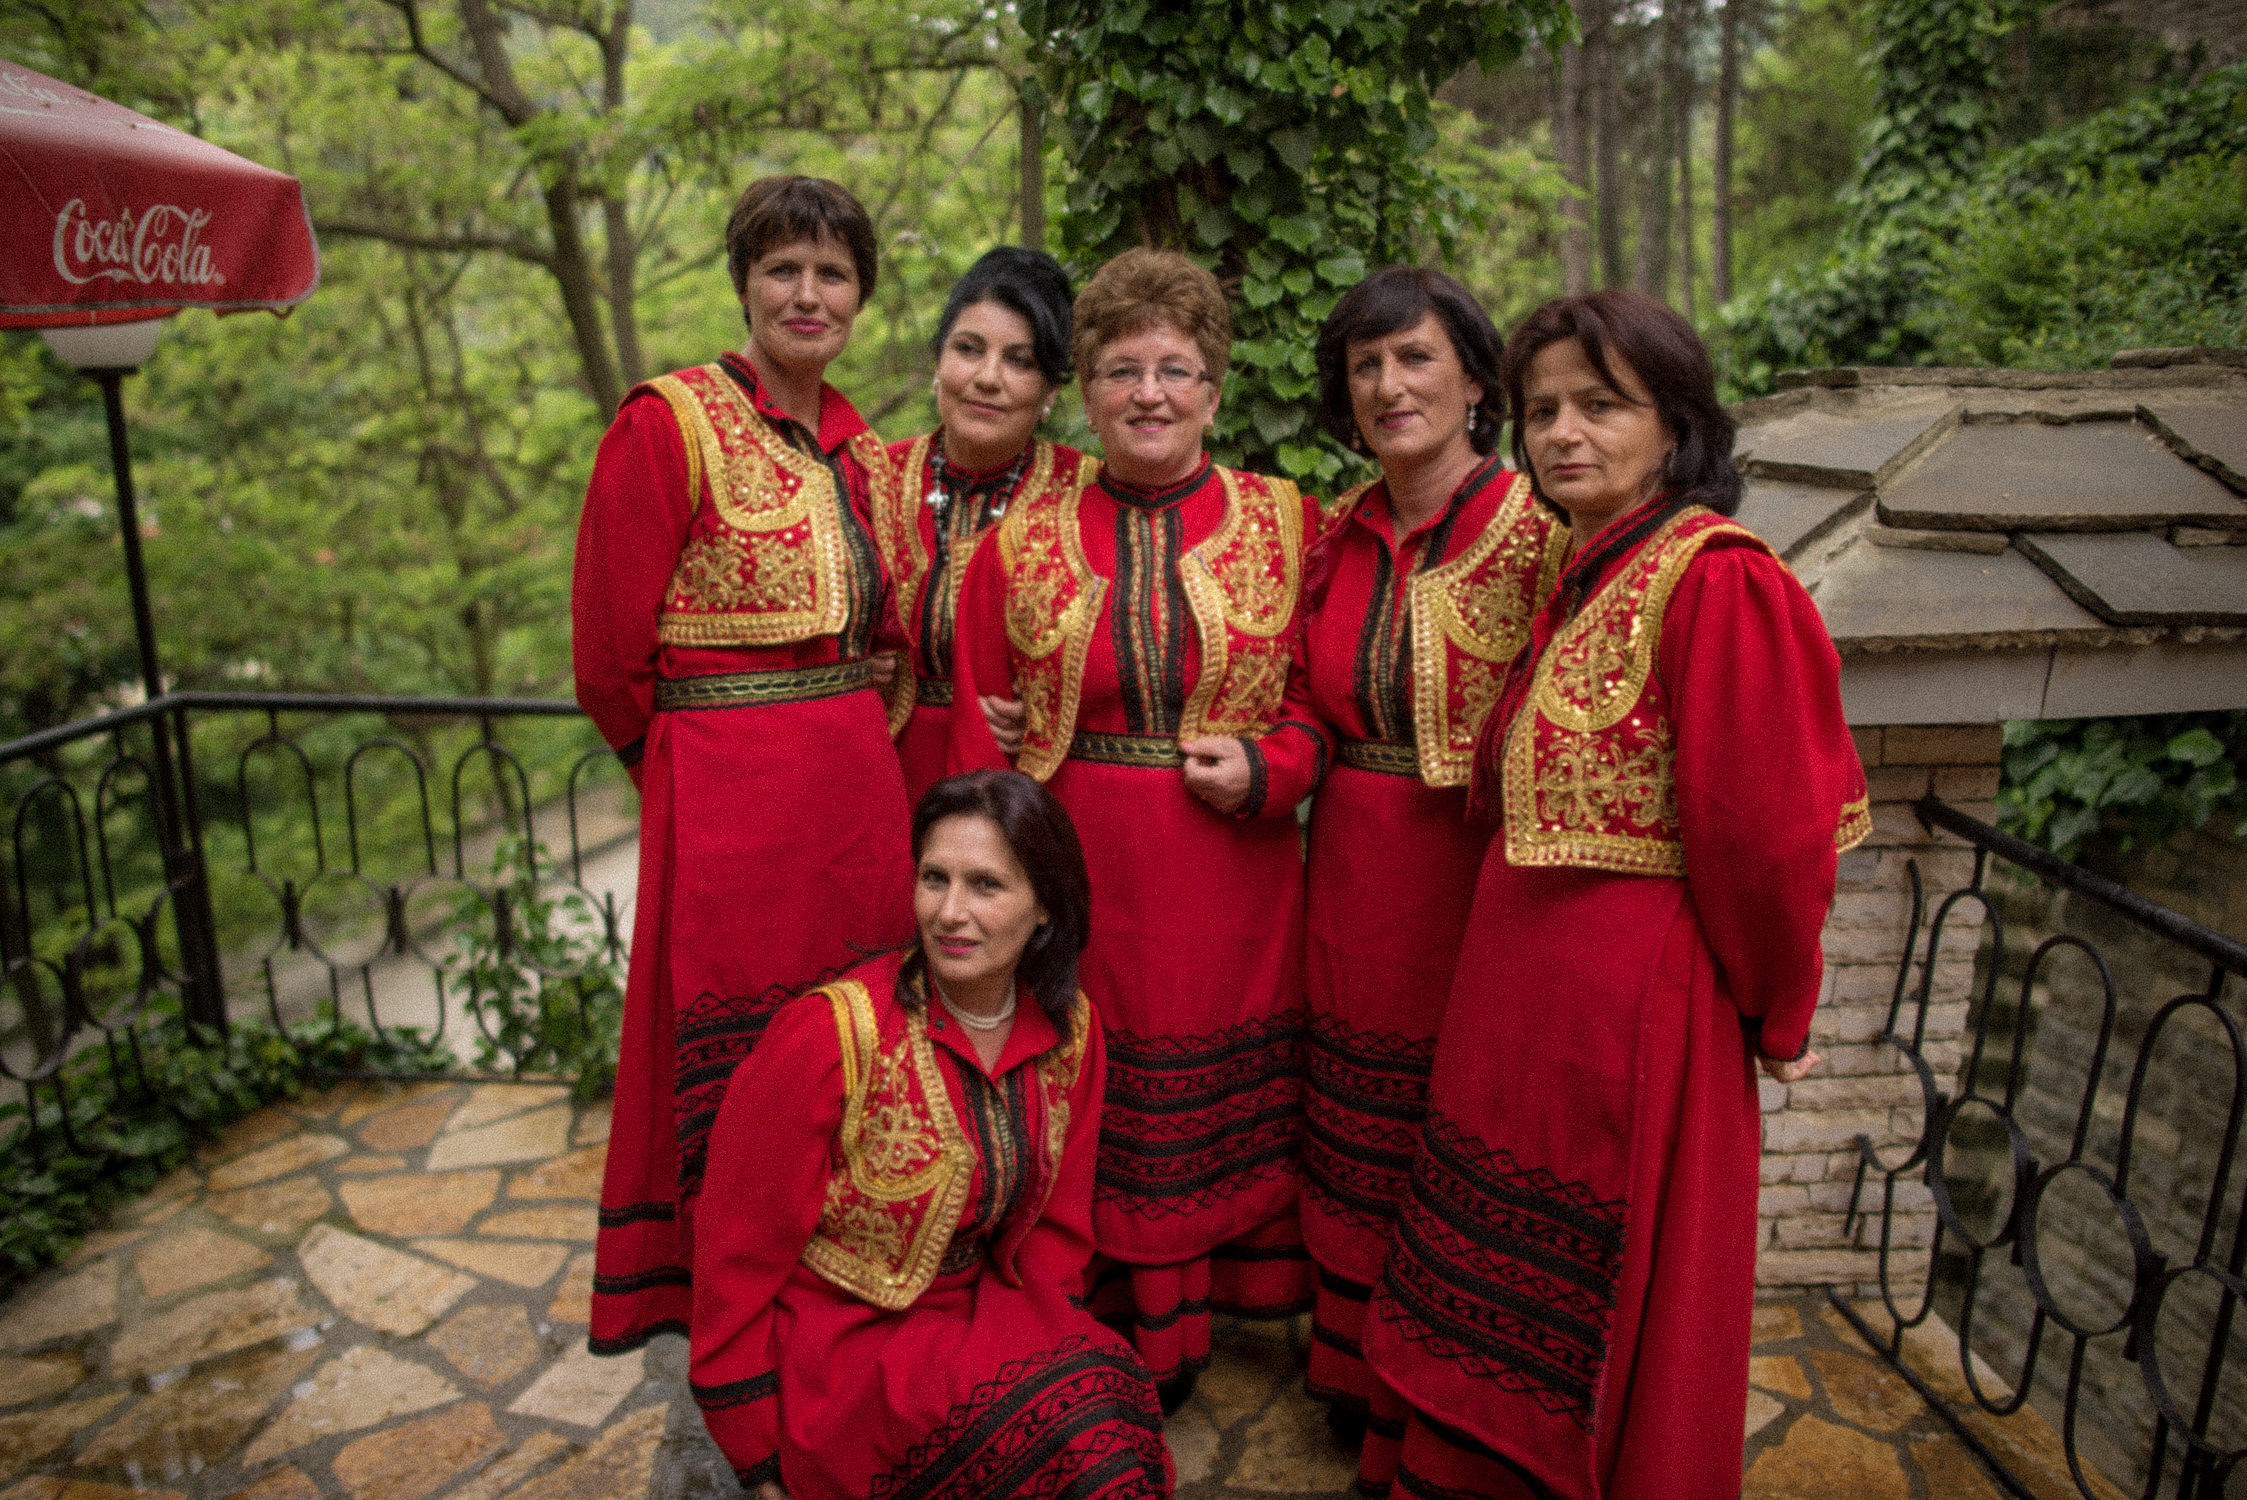 River Voices - Polyphonic choir from the small mountain village of Çorovoda